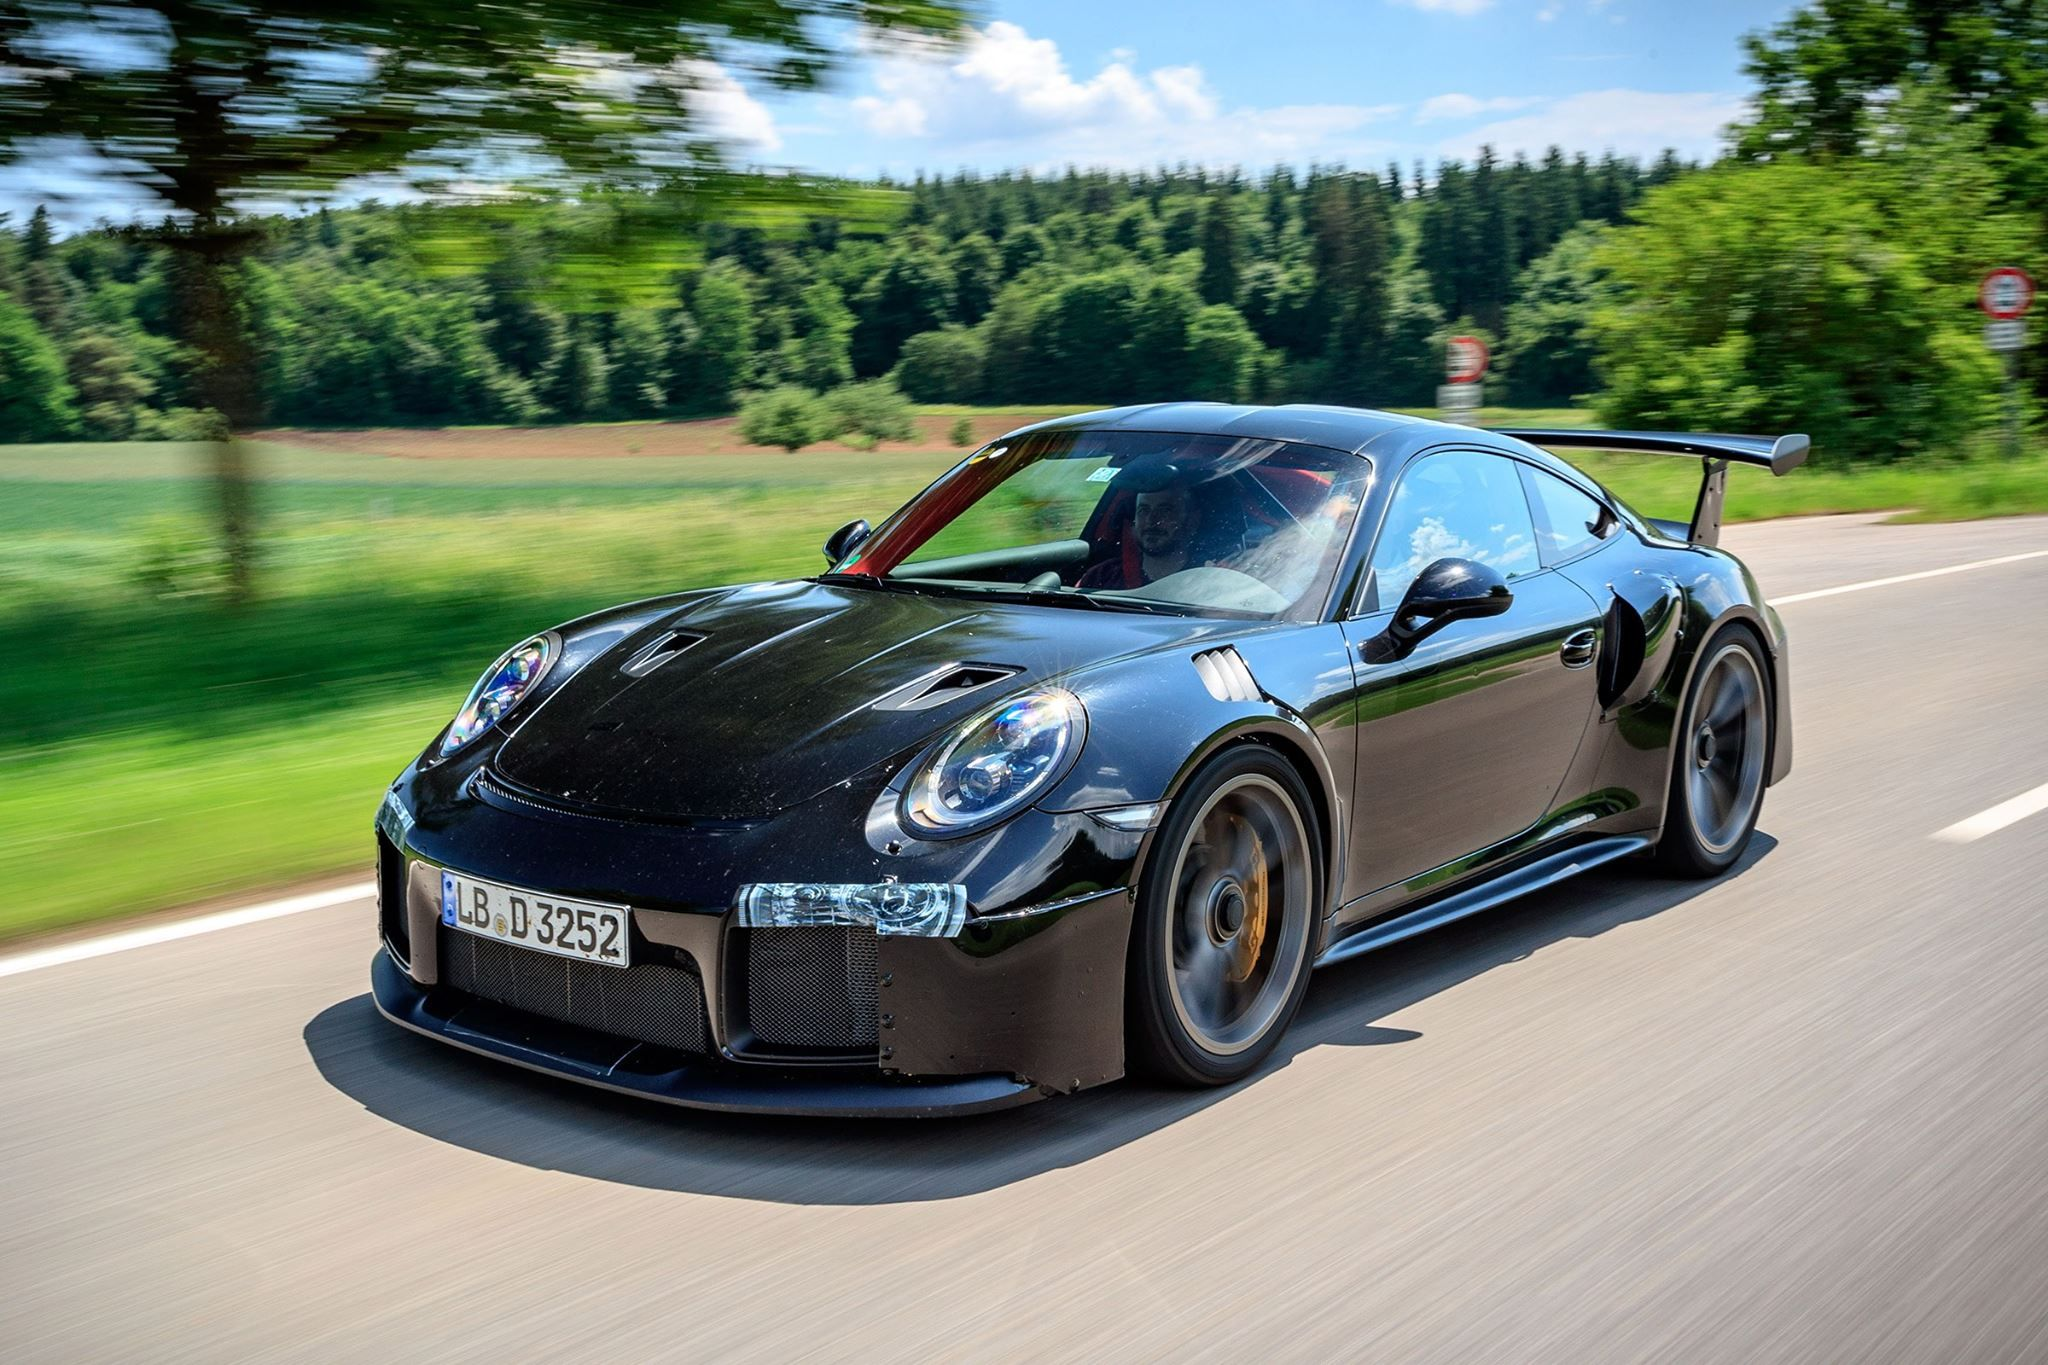 67a77851f6f0f98dbcc94c2165b5d19b Stunning Porsche 911 Gt2 Prix Occasion Cars Trend